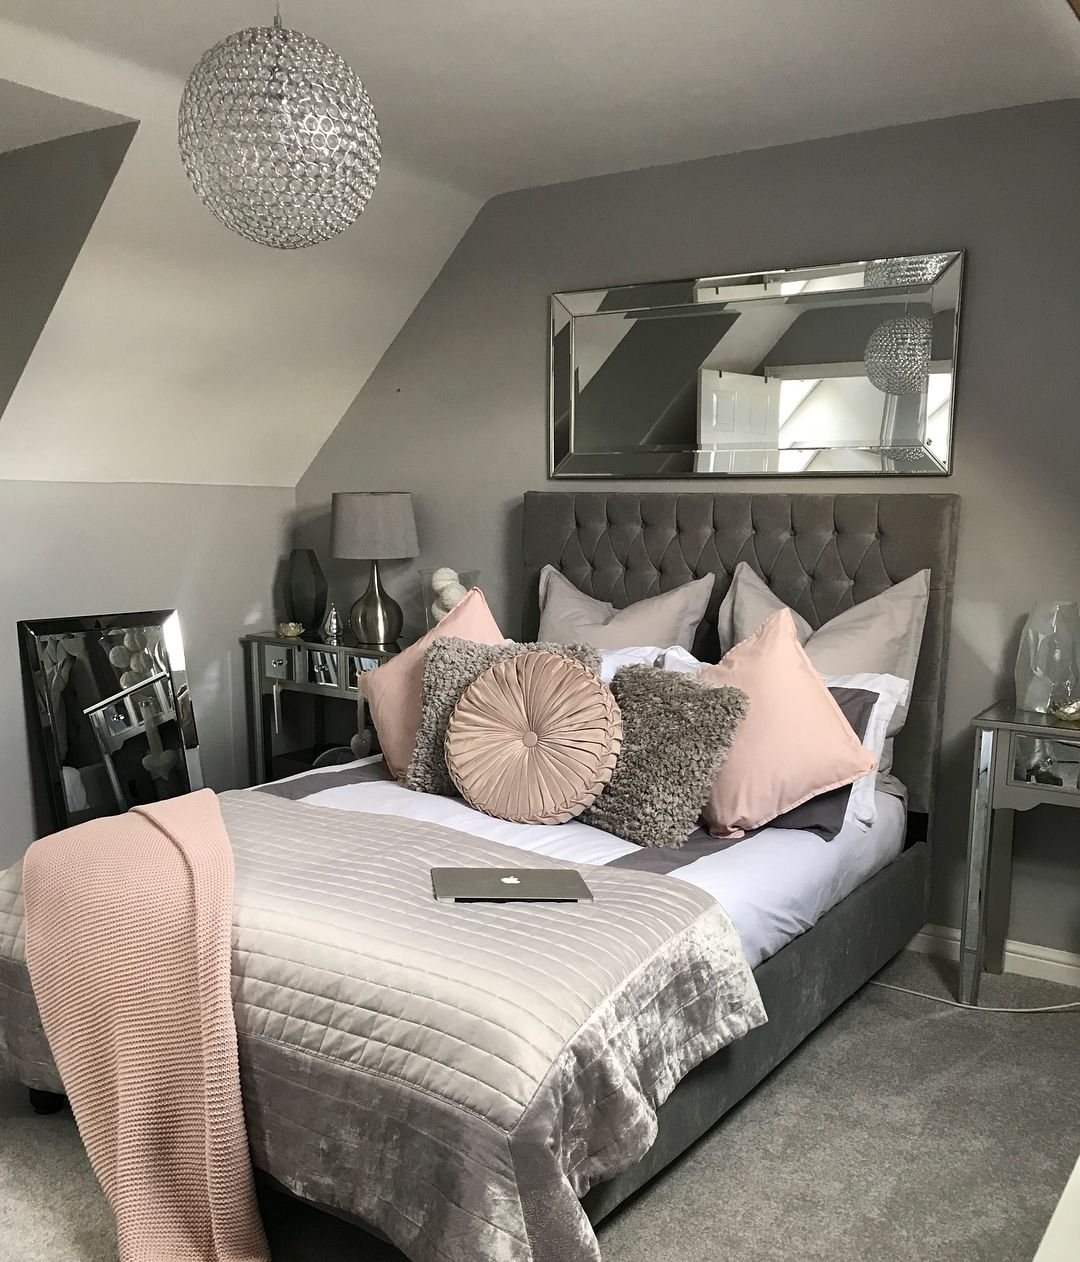 Master bedroom decorating ideas gray  Love my cuteee bedroom now everythingus finally complete  Home